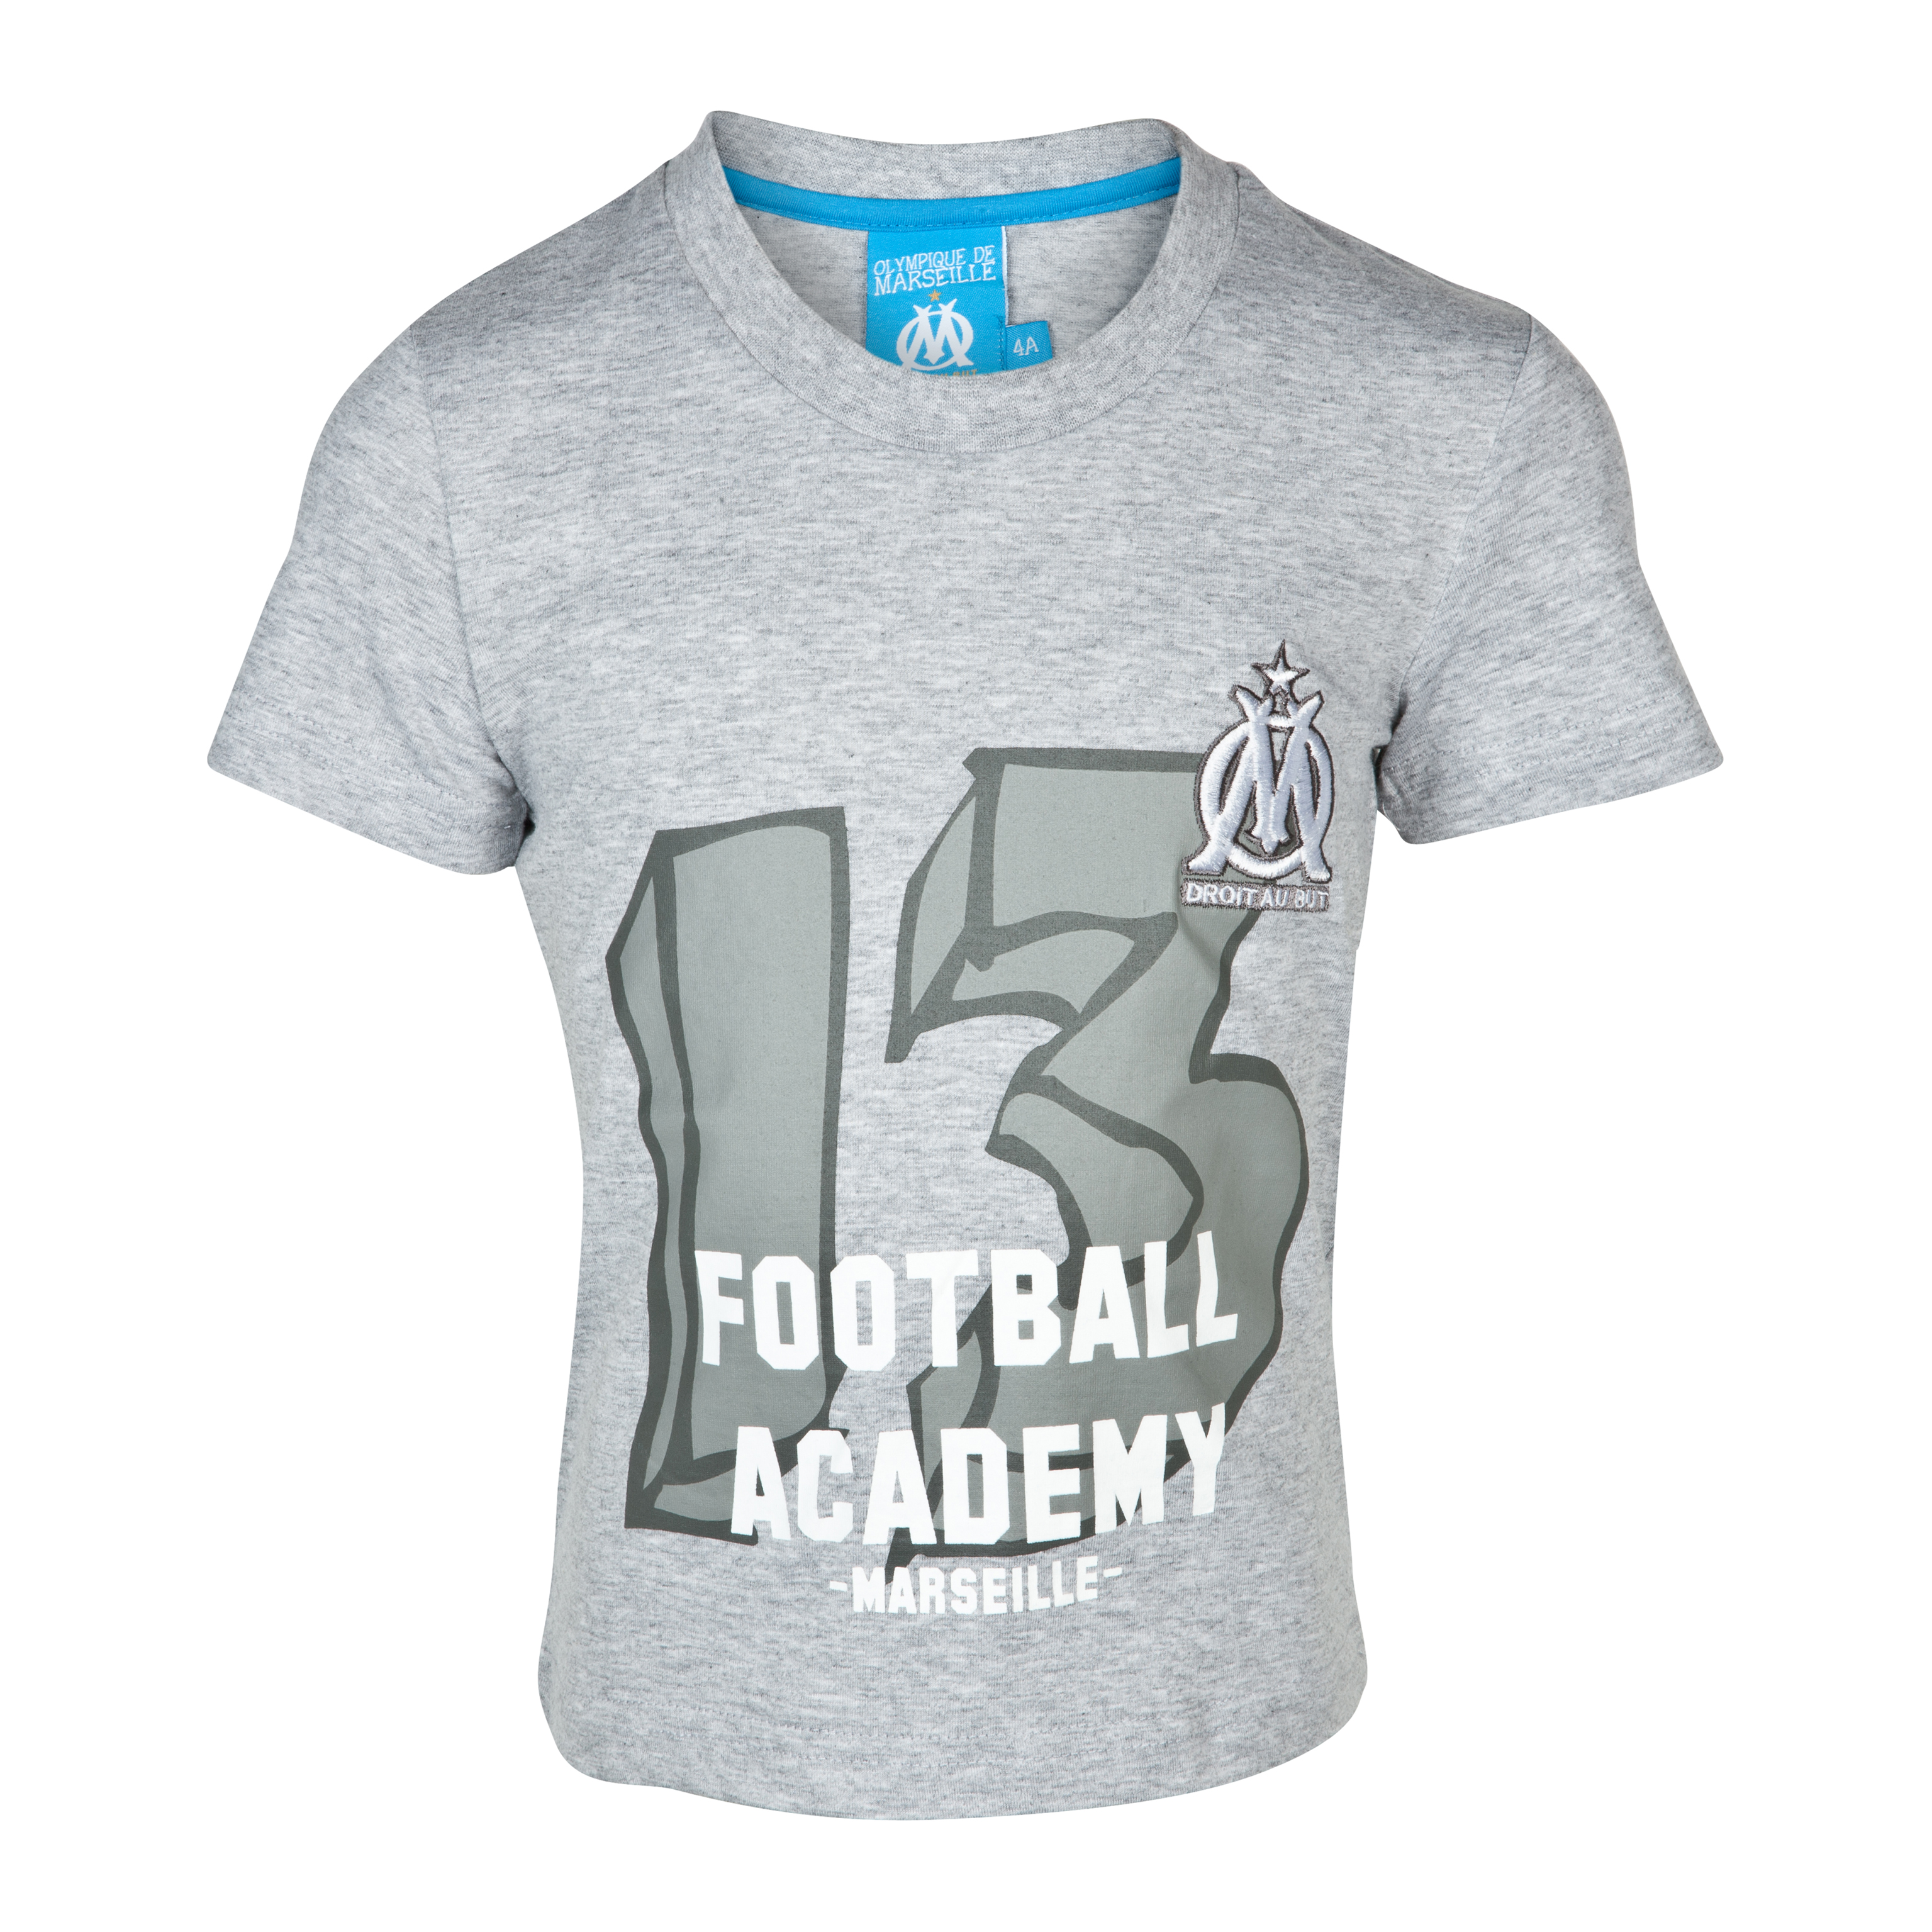 T-shirt Football Academy Olympique de Marseille - Gris - Enfant